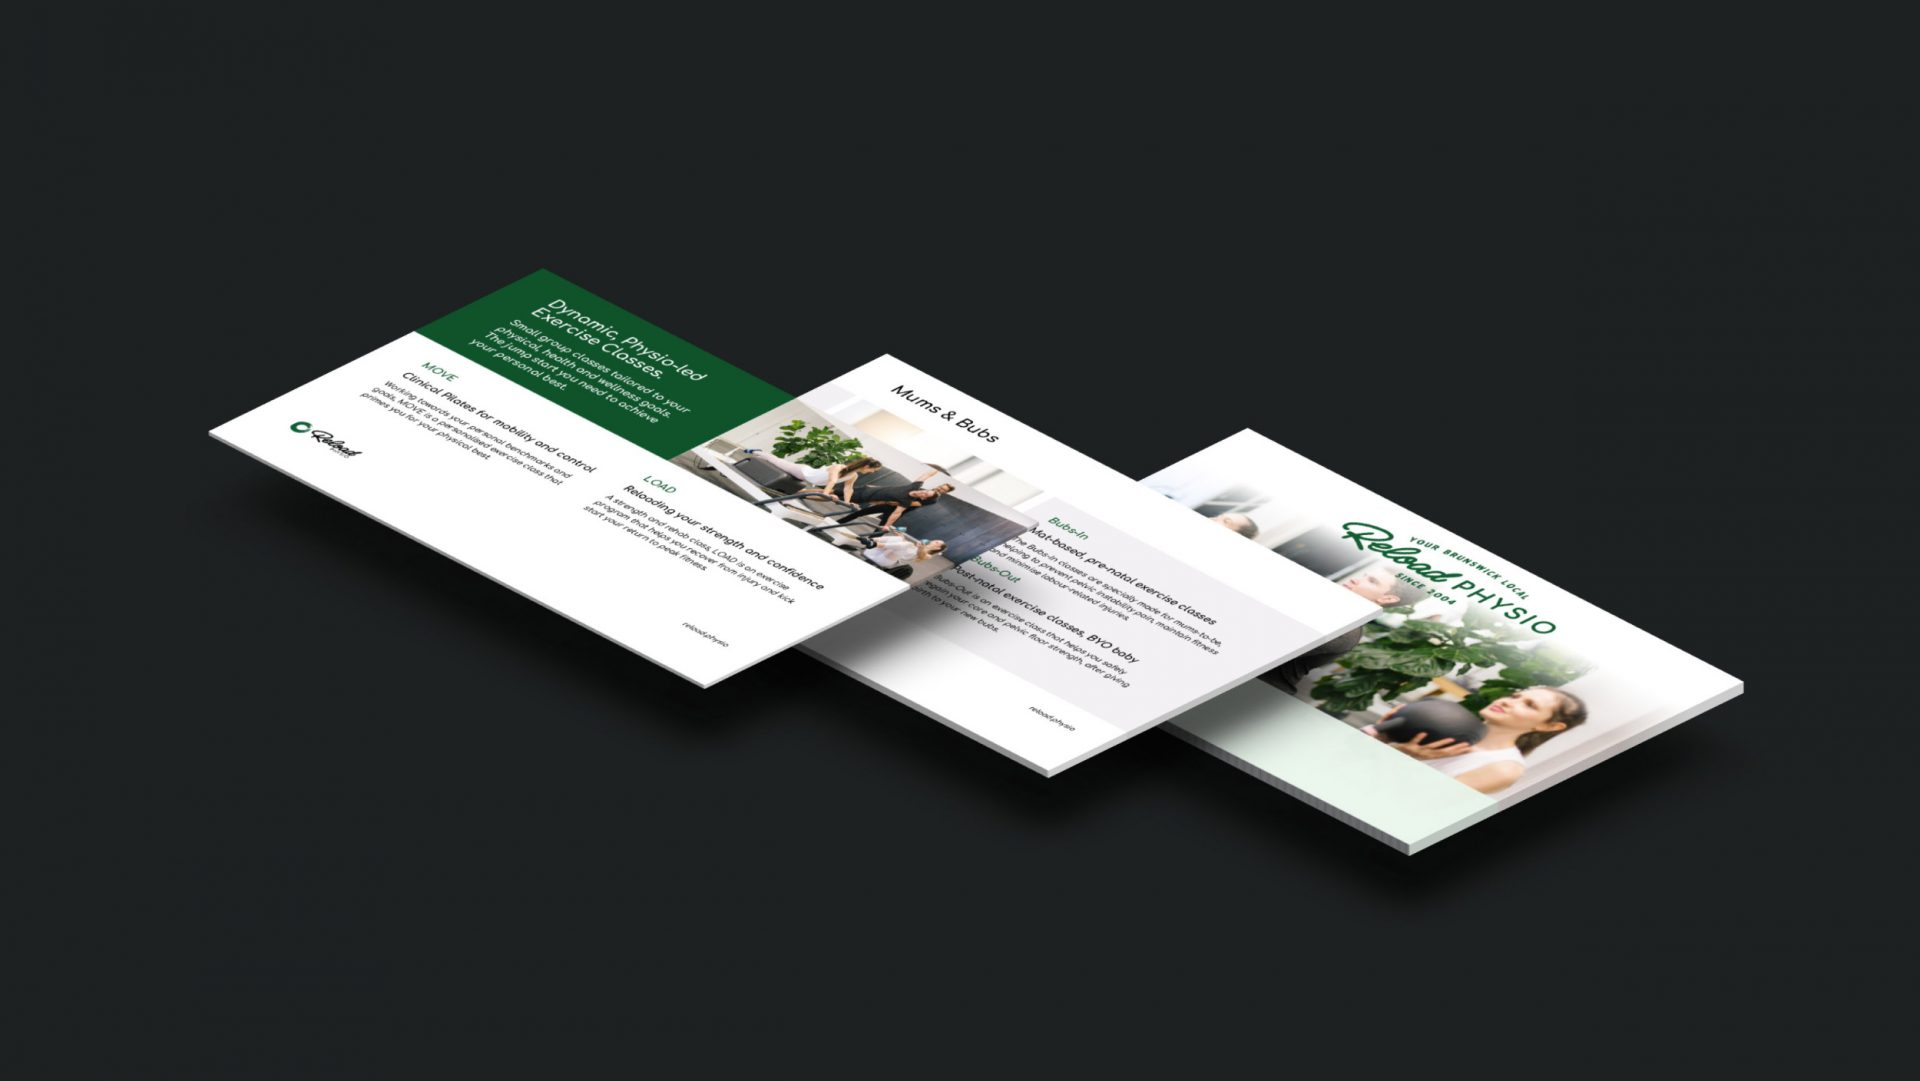 Powerpoint template design for Reload Physio